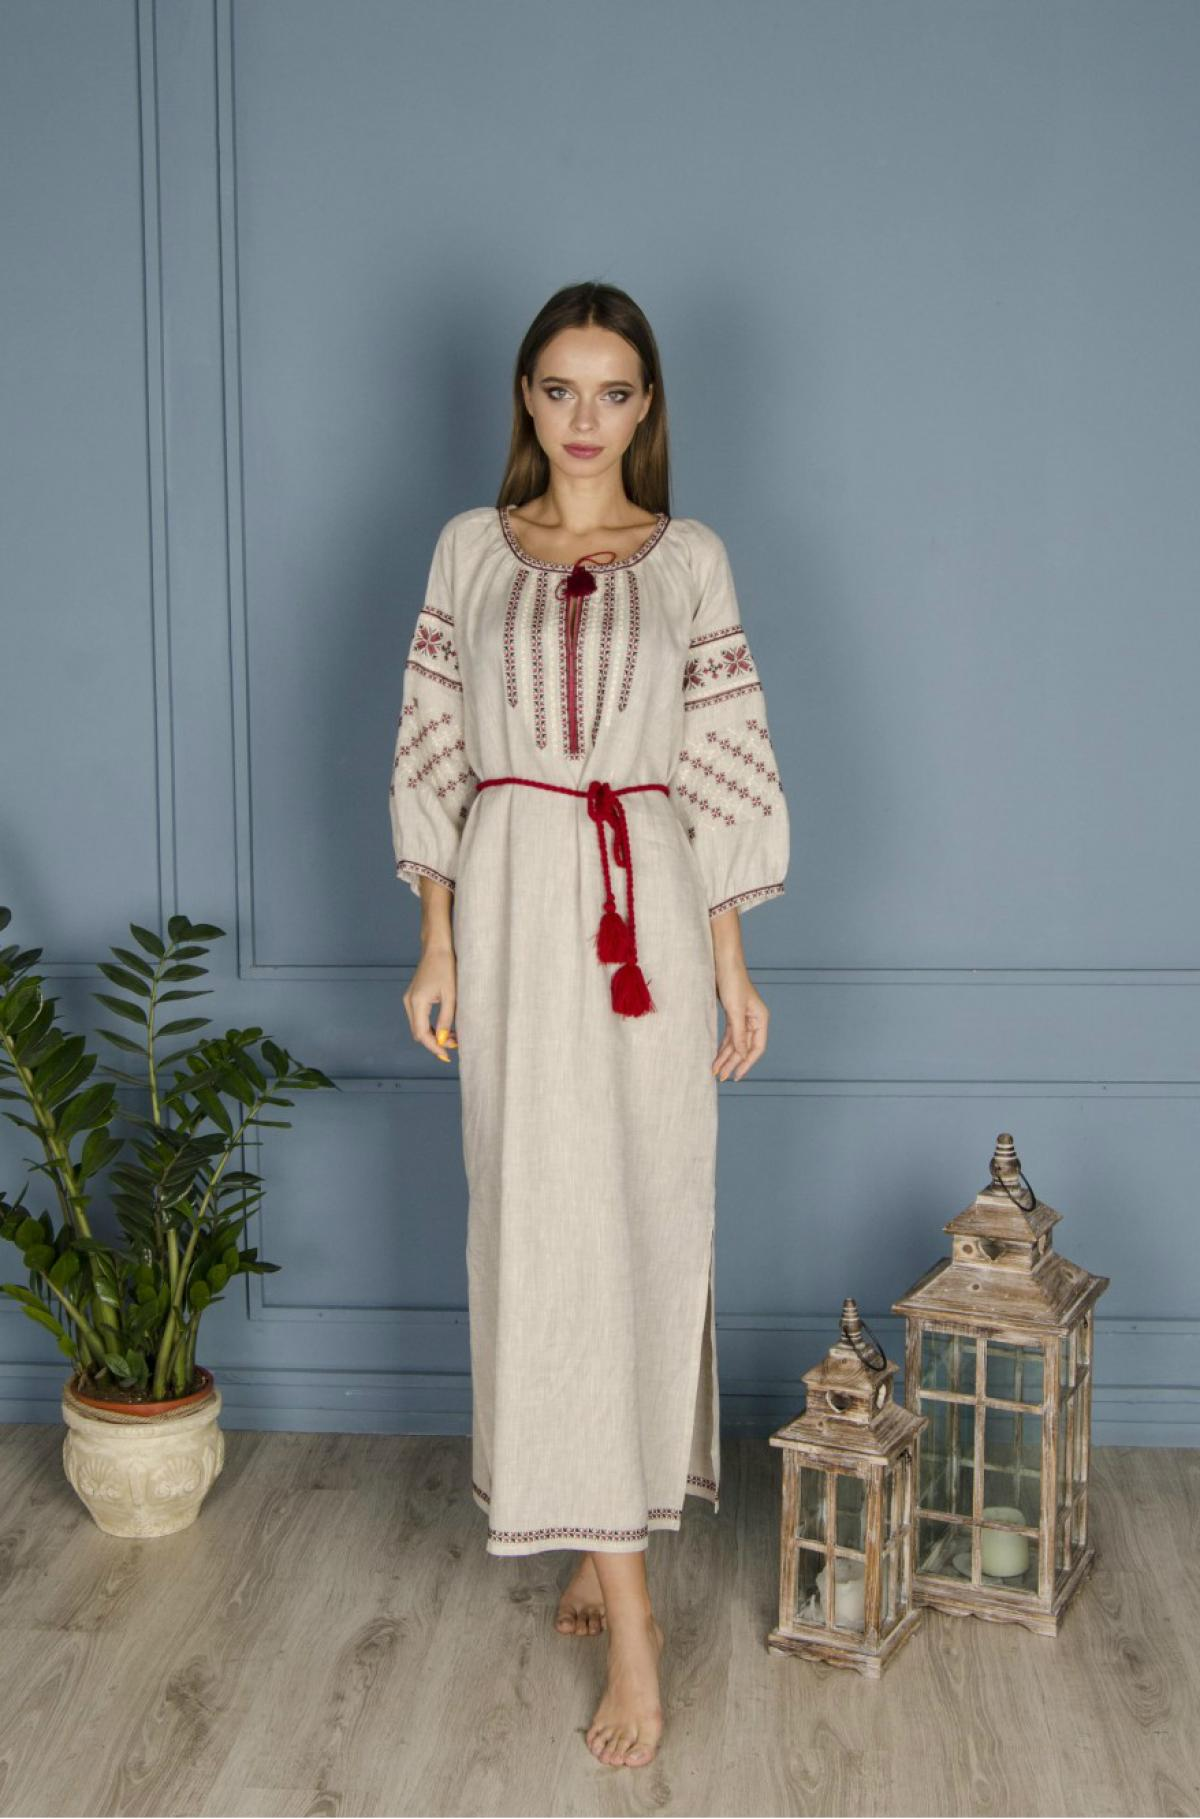 Linen gray long dress with red embroidery. Photo №1. | Narodnyi dim Ukraine